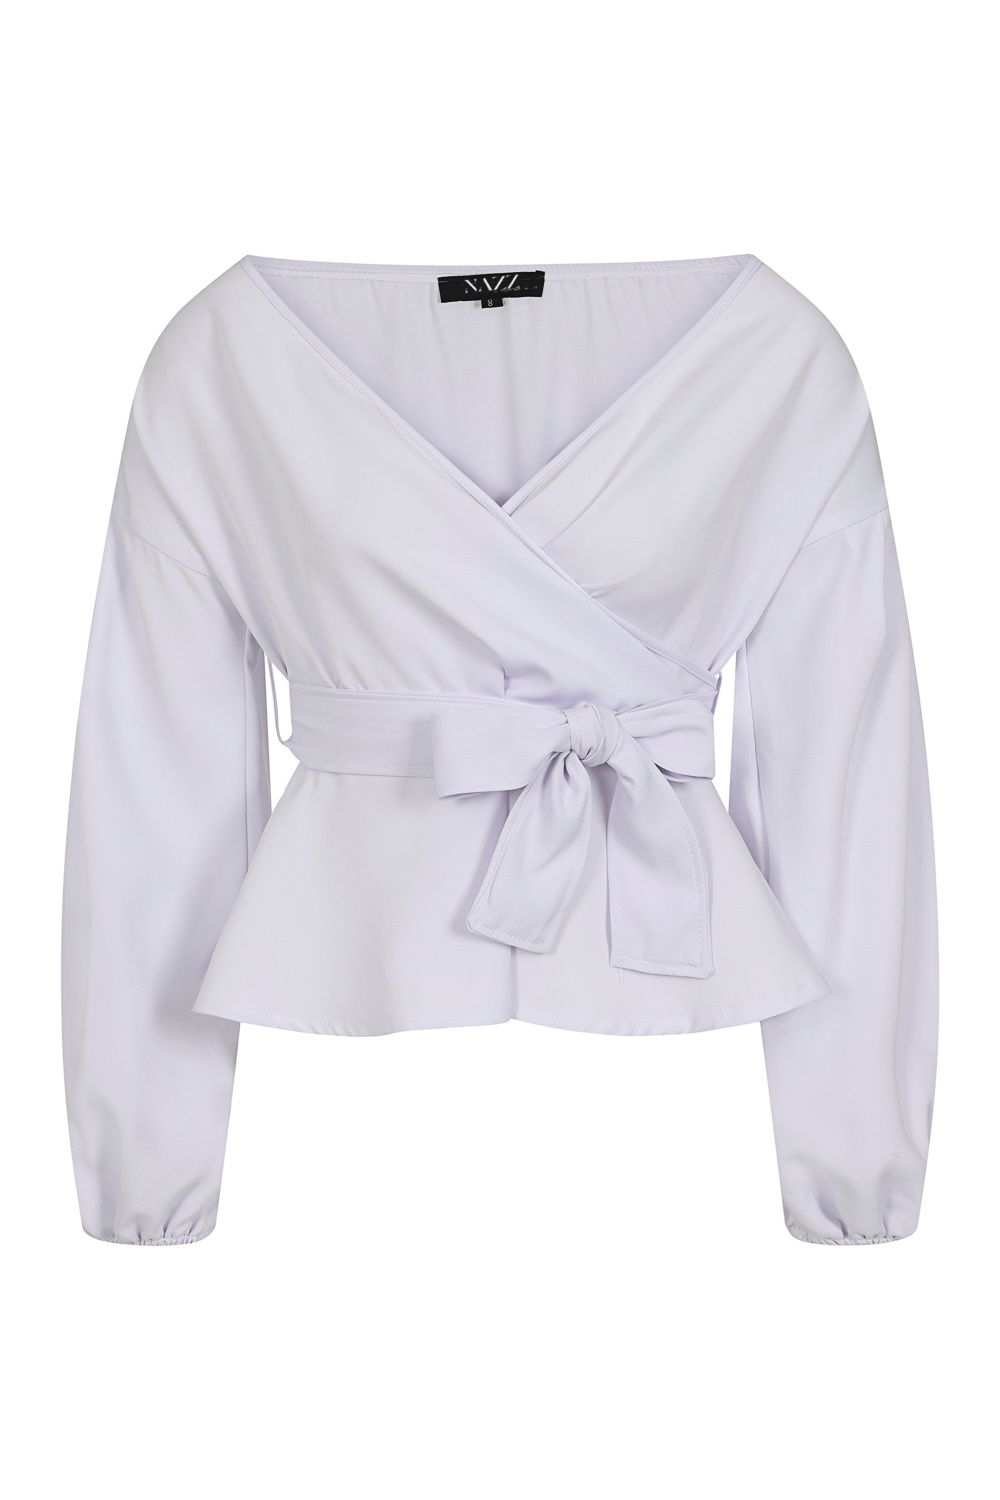 Mili White Longsleeve Wrap Over Tie Top